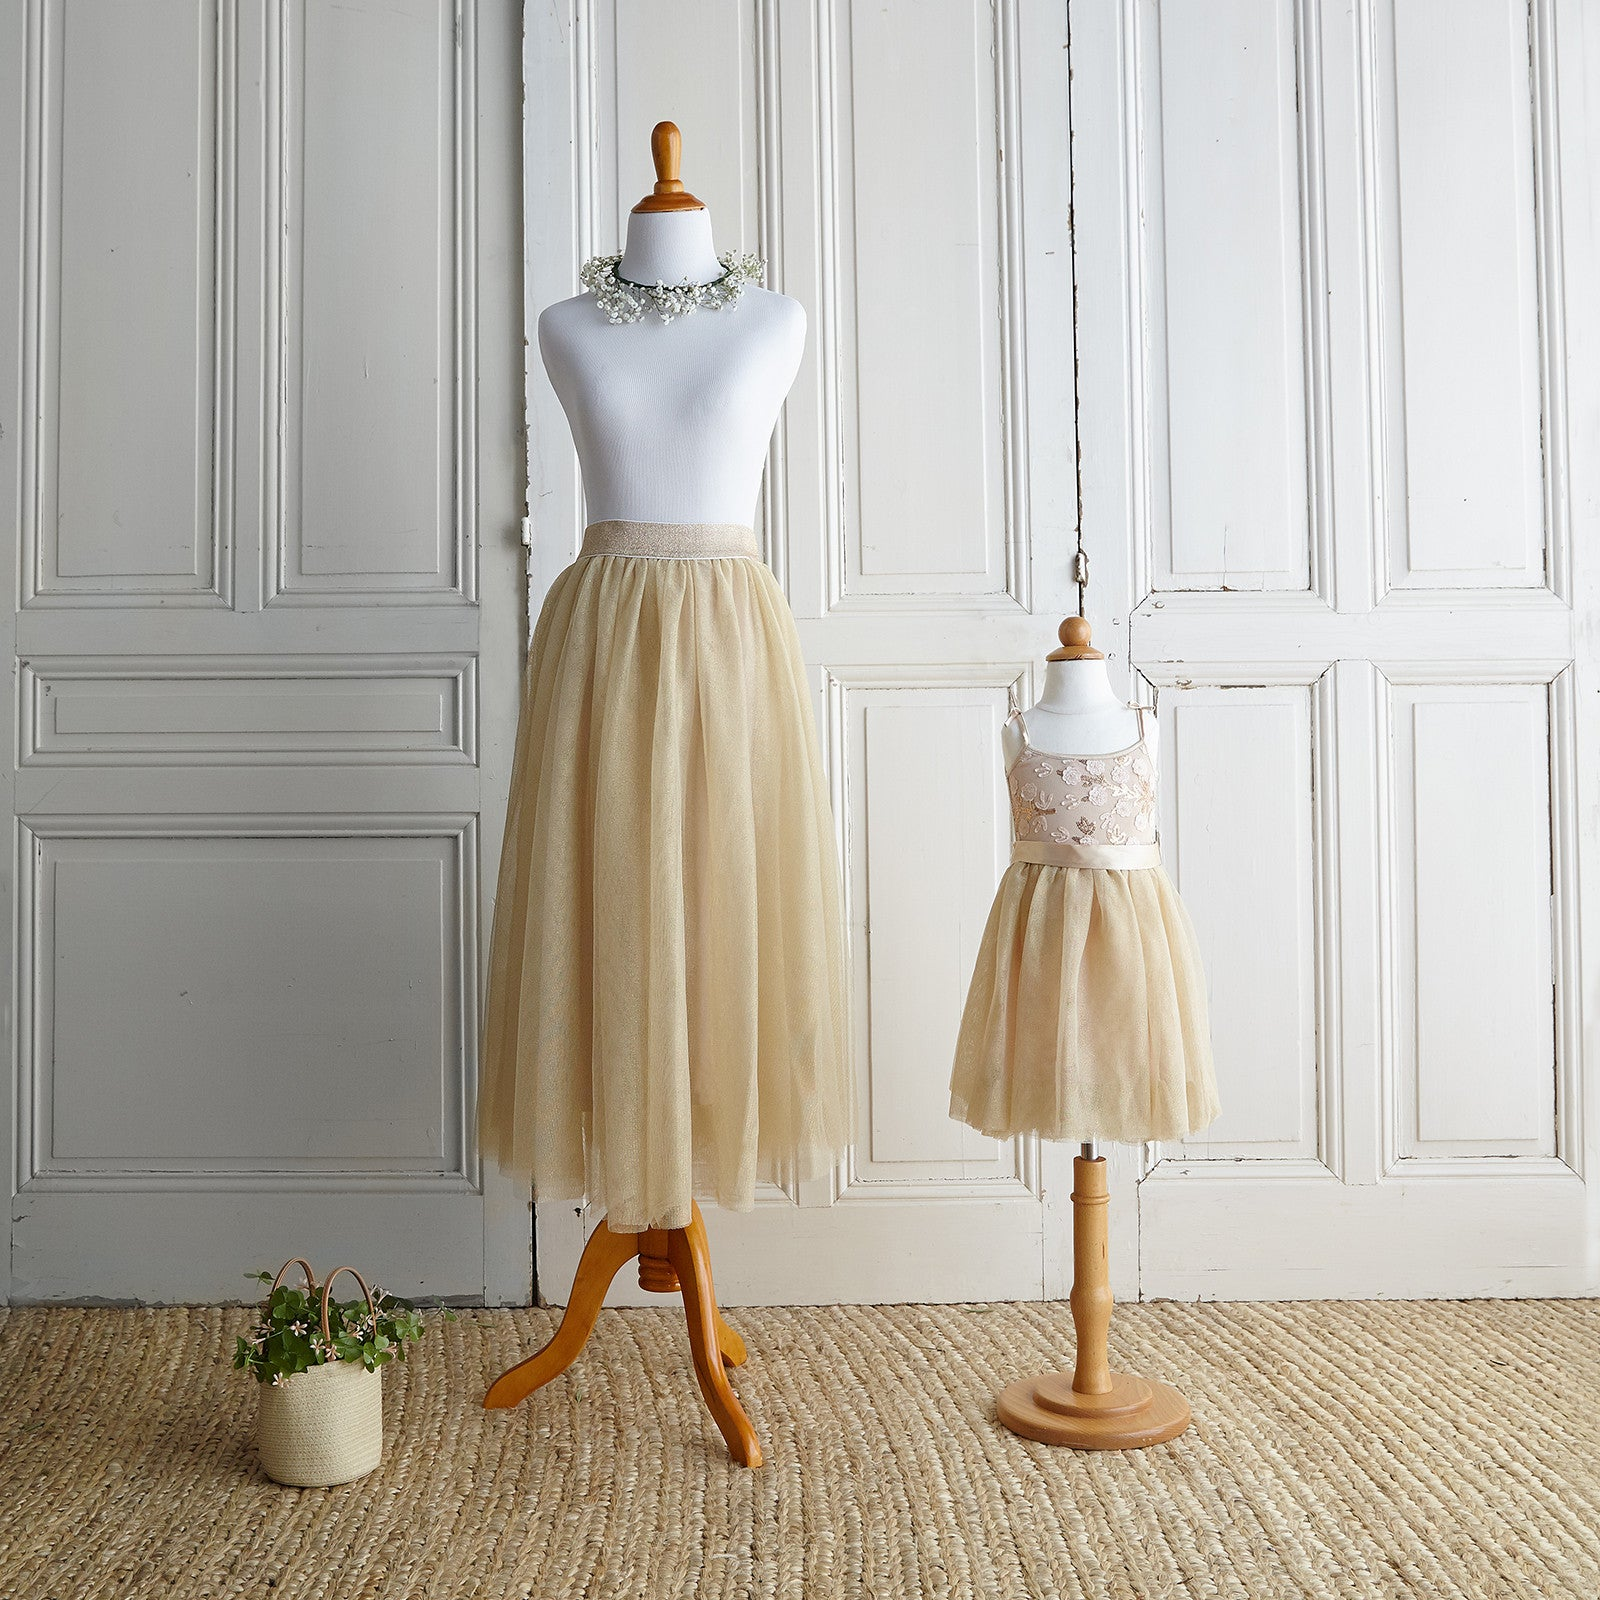 Twirly Tulle Skirt (Women) - Gold Lurex (FINAL SALE - Size M Only)